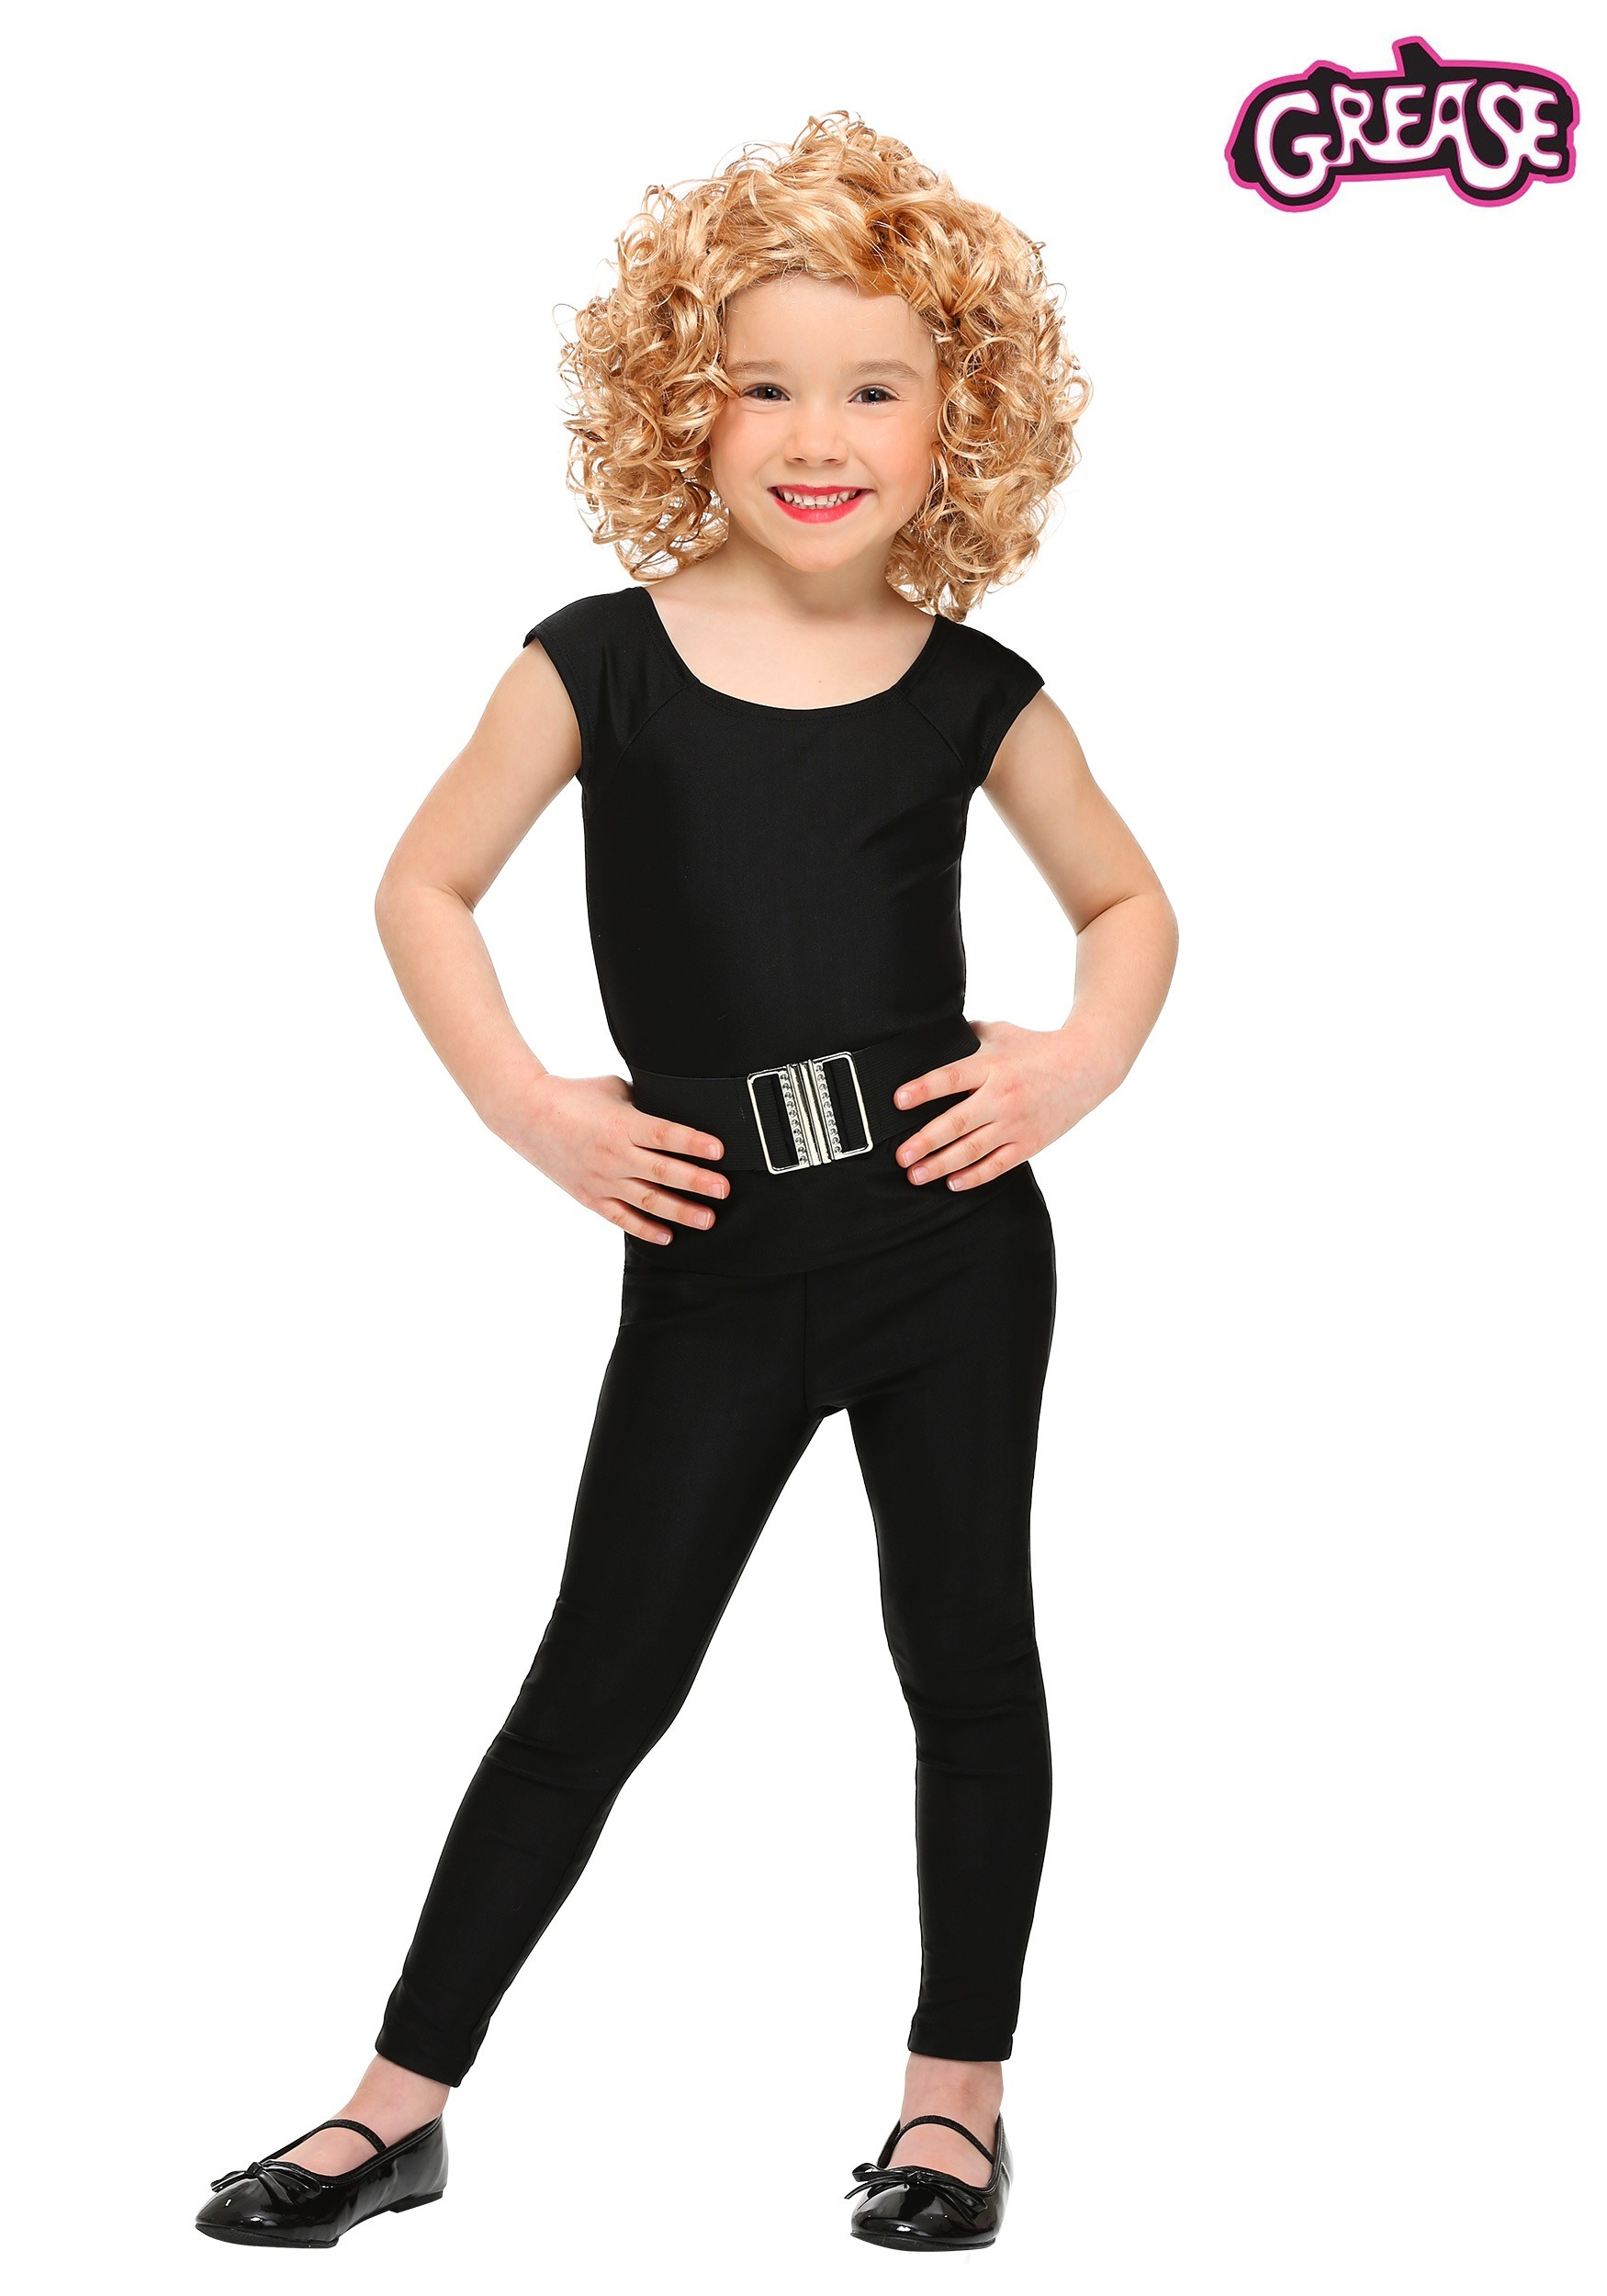 New Home Party Decorations Toddler Grease Sandy Costume